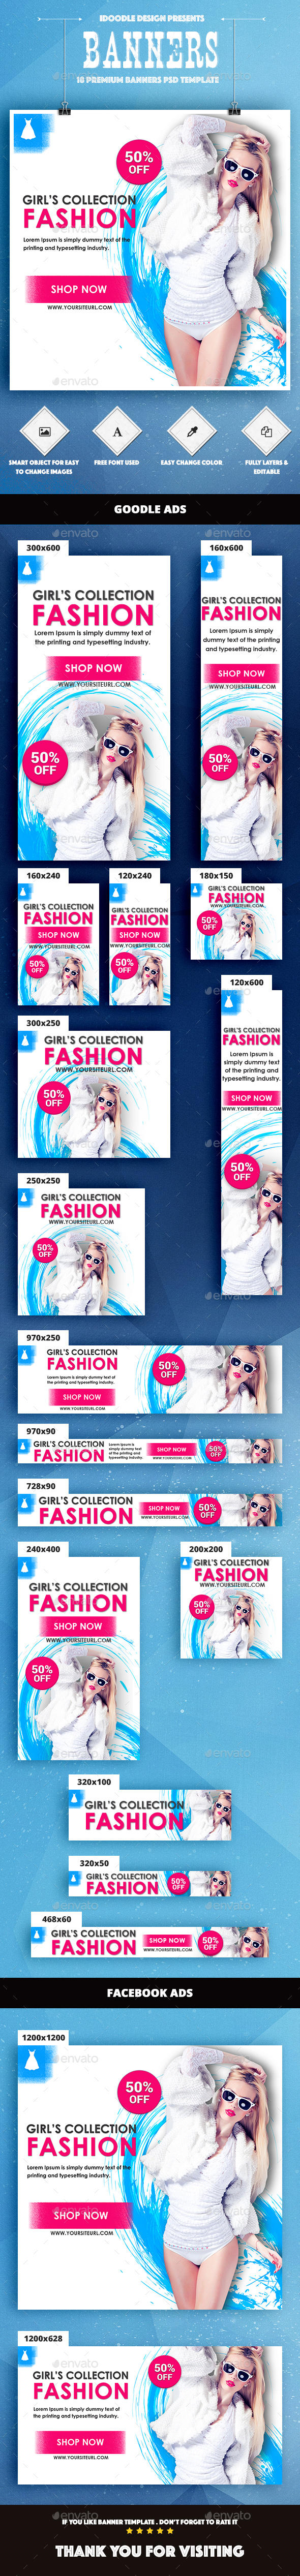 Fashion Banners Ads [Sexy Girl] - Banners & Ads Web Elements